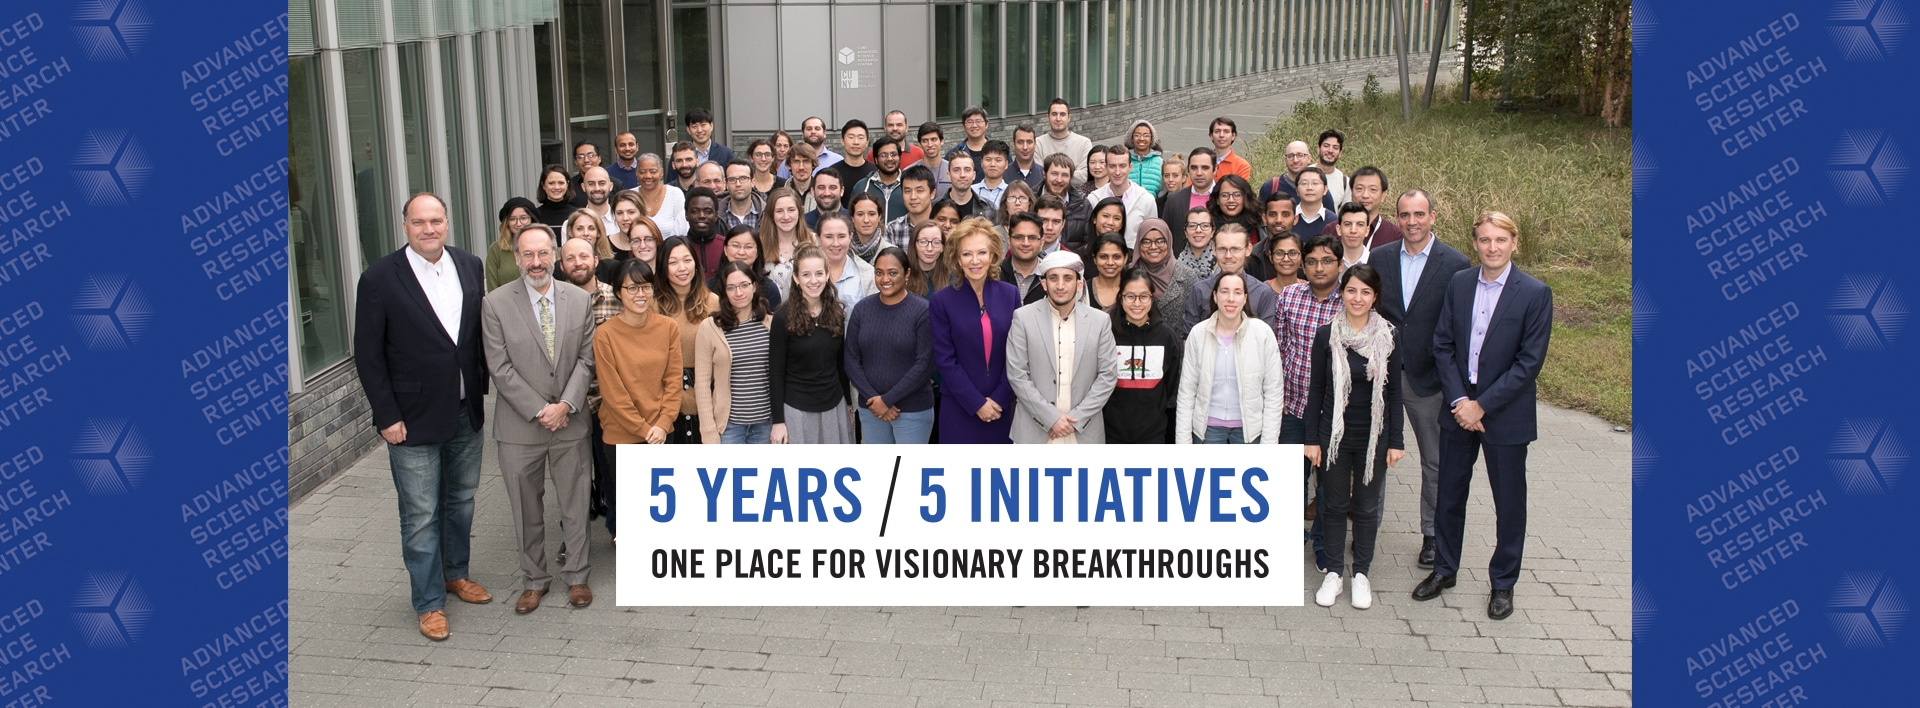 5 Years / 5 Initiatives / One Place for Visionary Breakthroughs